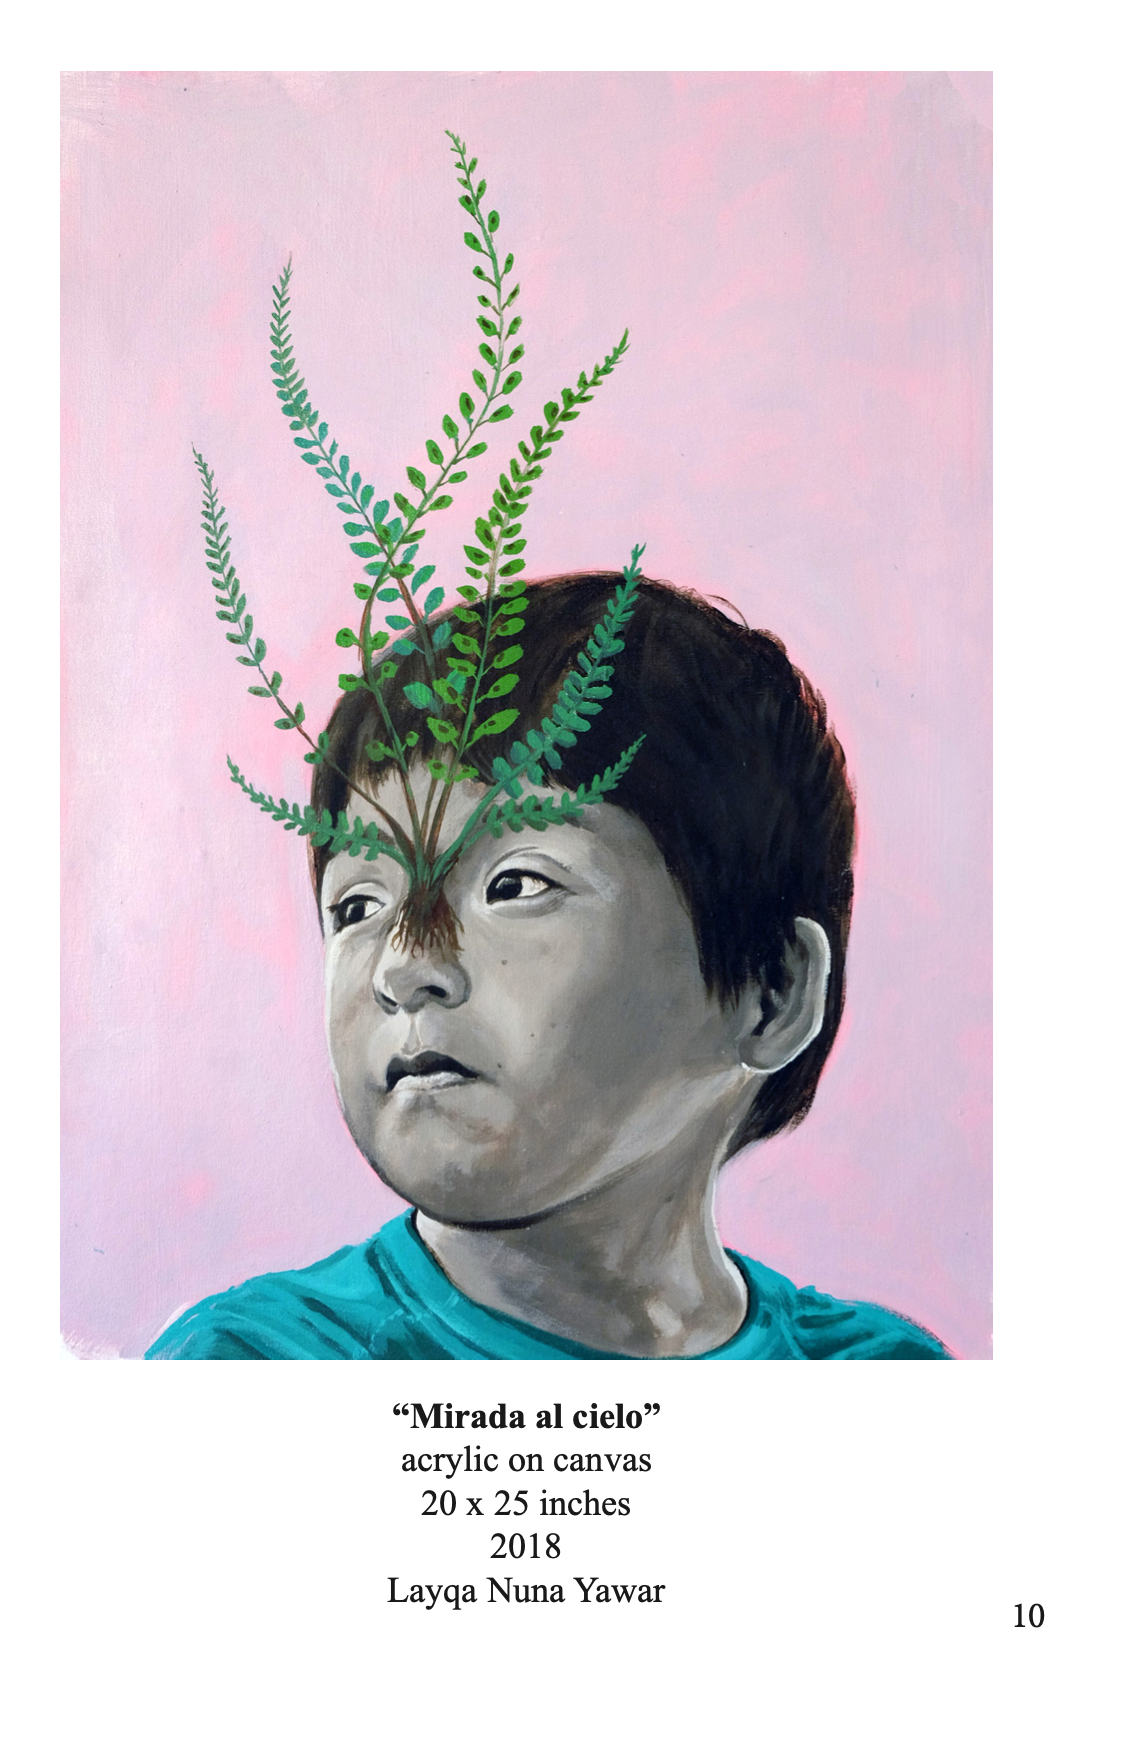 Portrait of a young child against a pink background; plants emerge from the child's face.